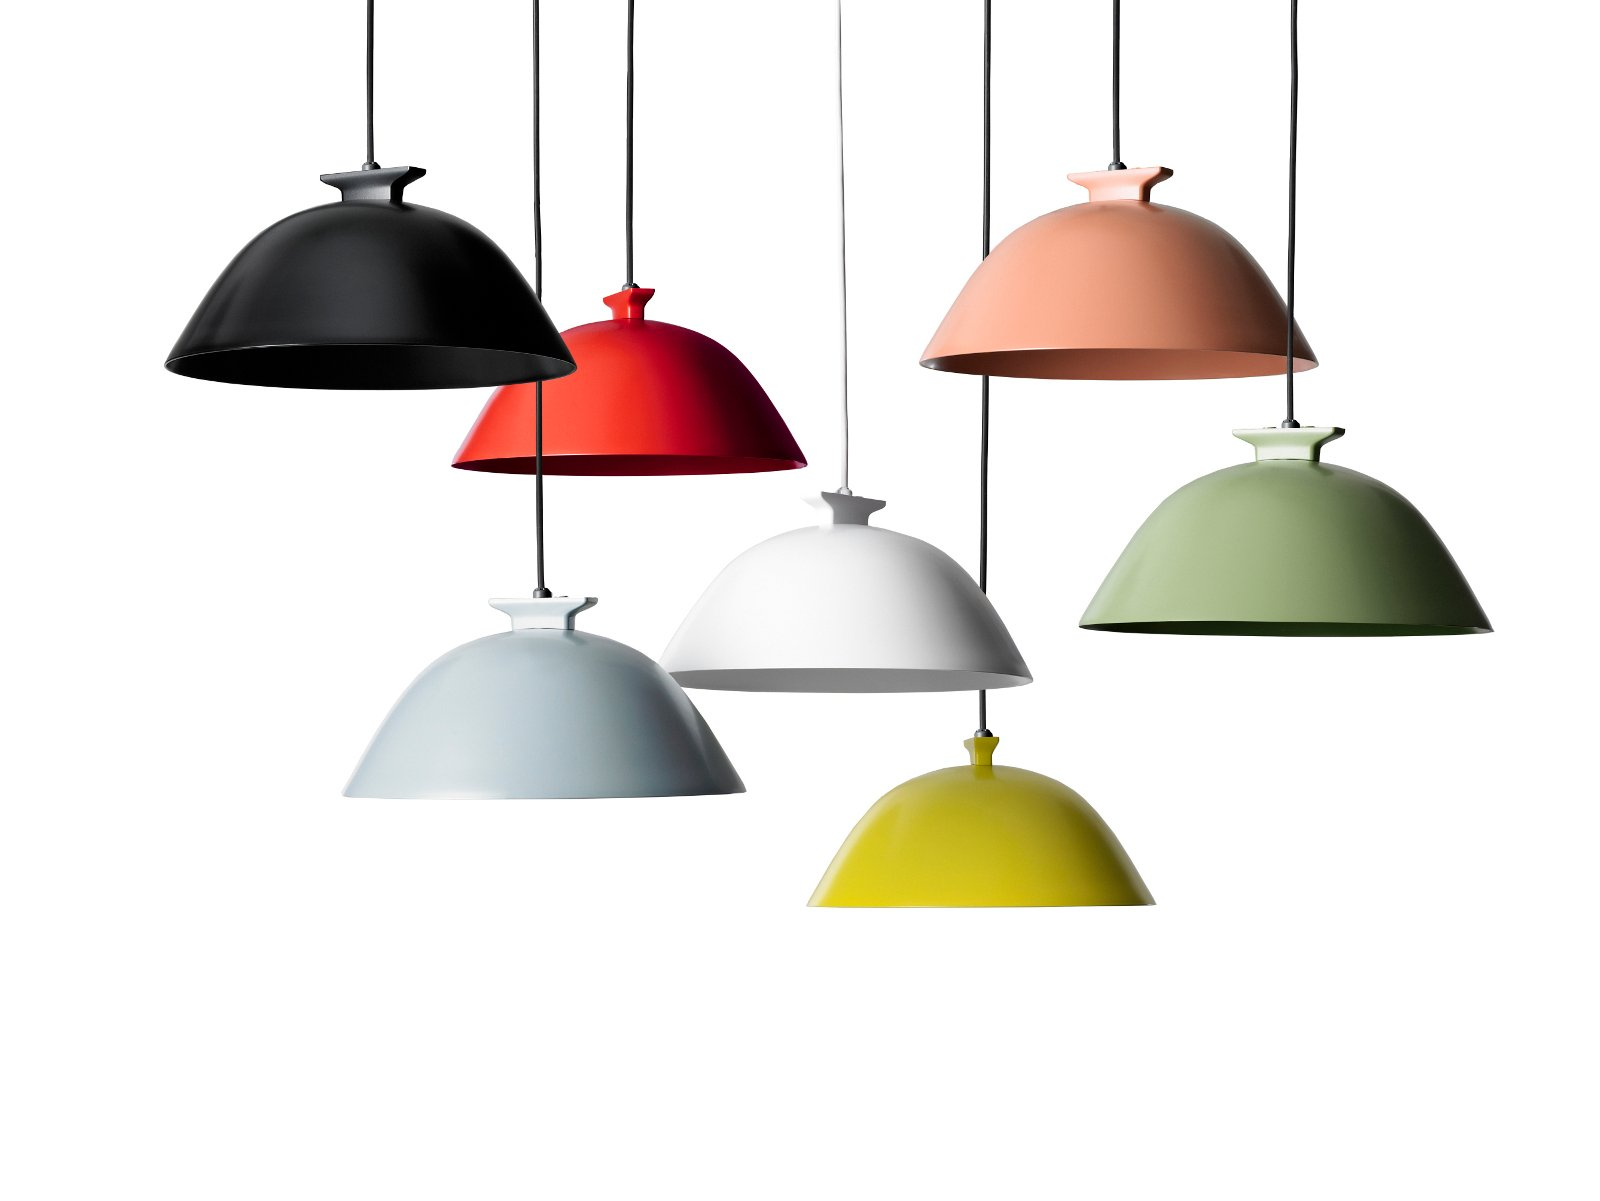 Lighting Wastberg Archiproducts